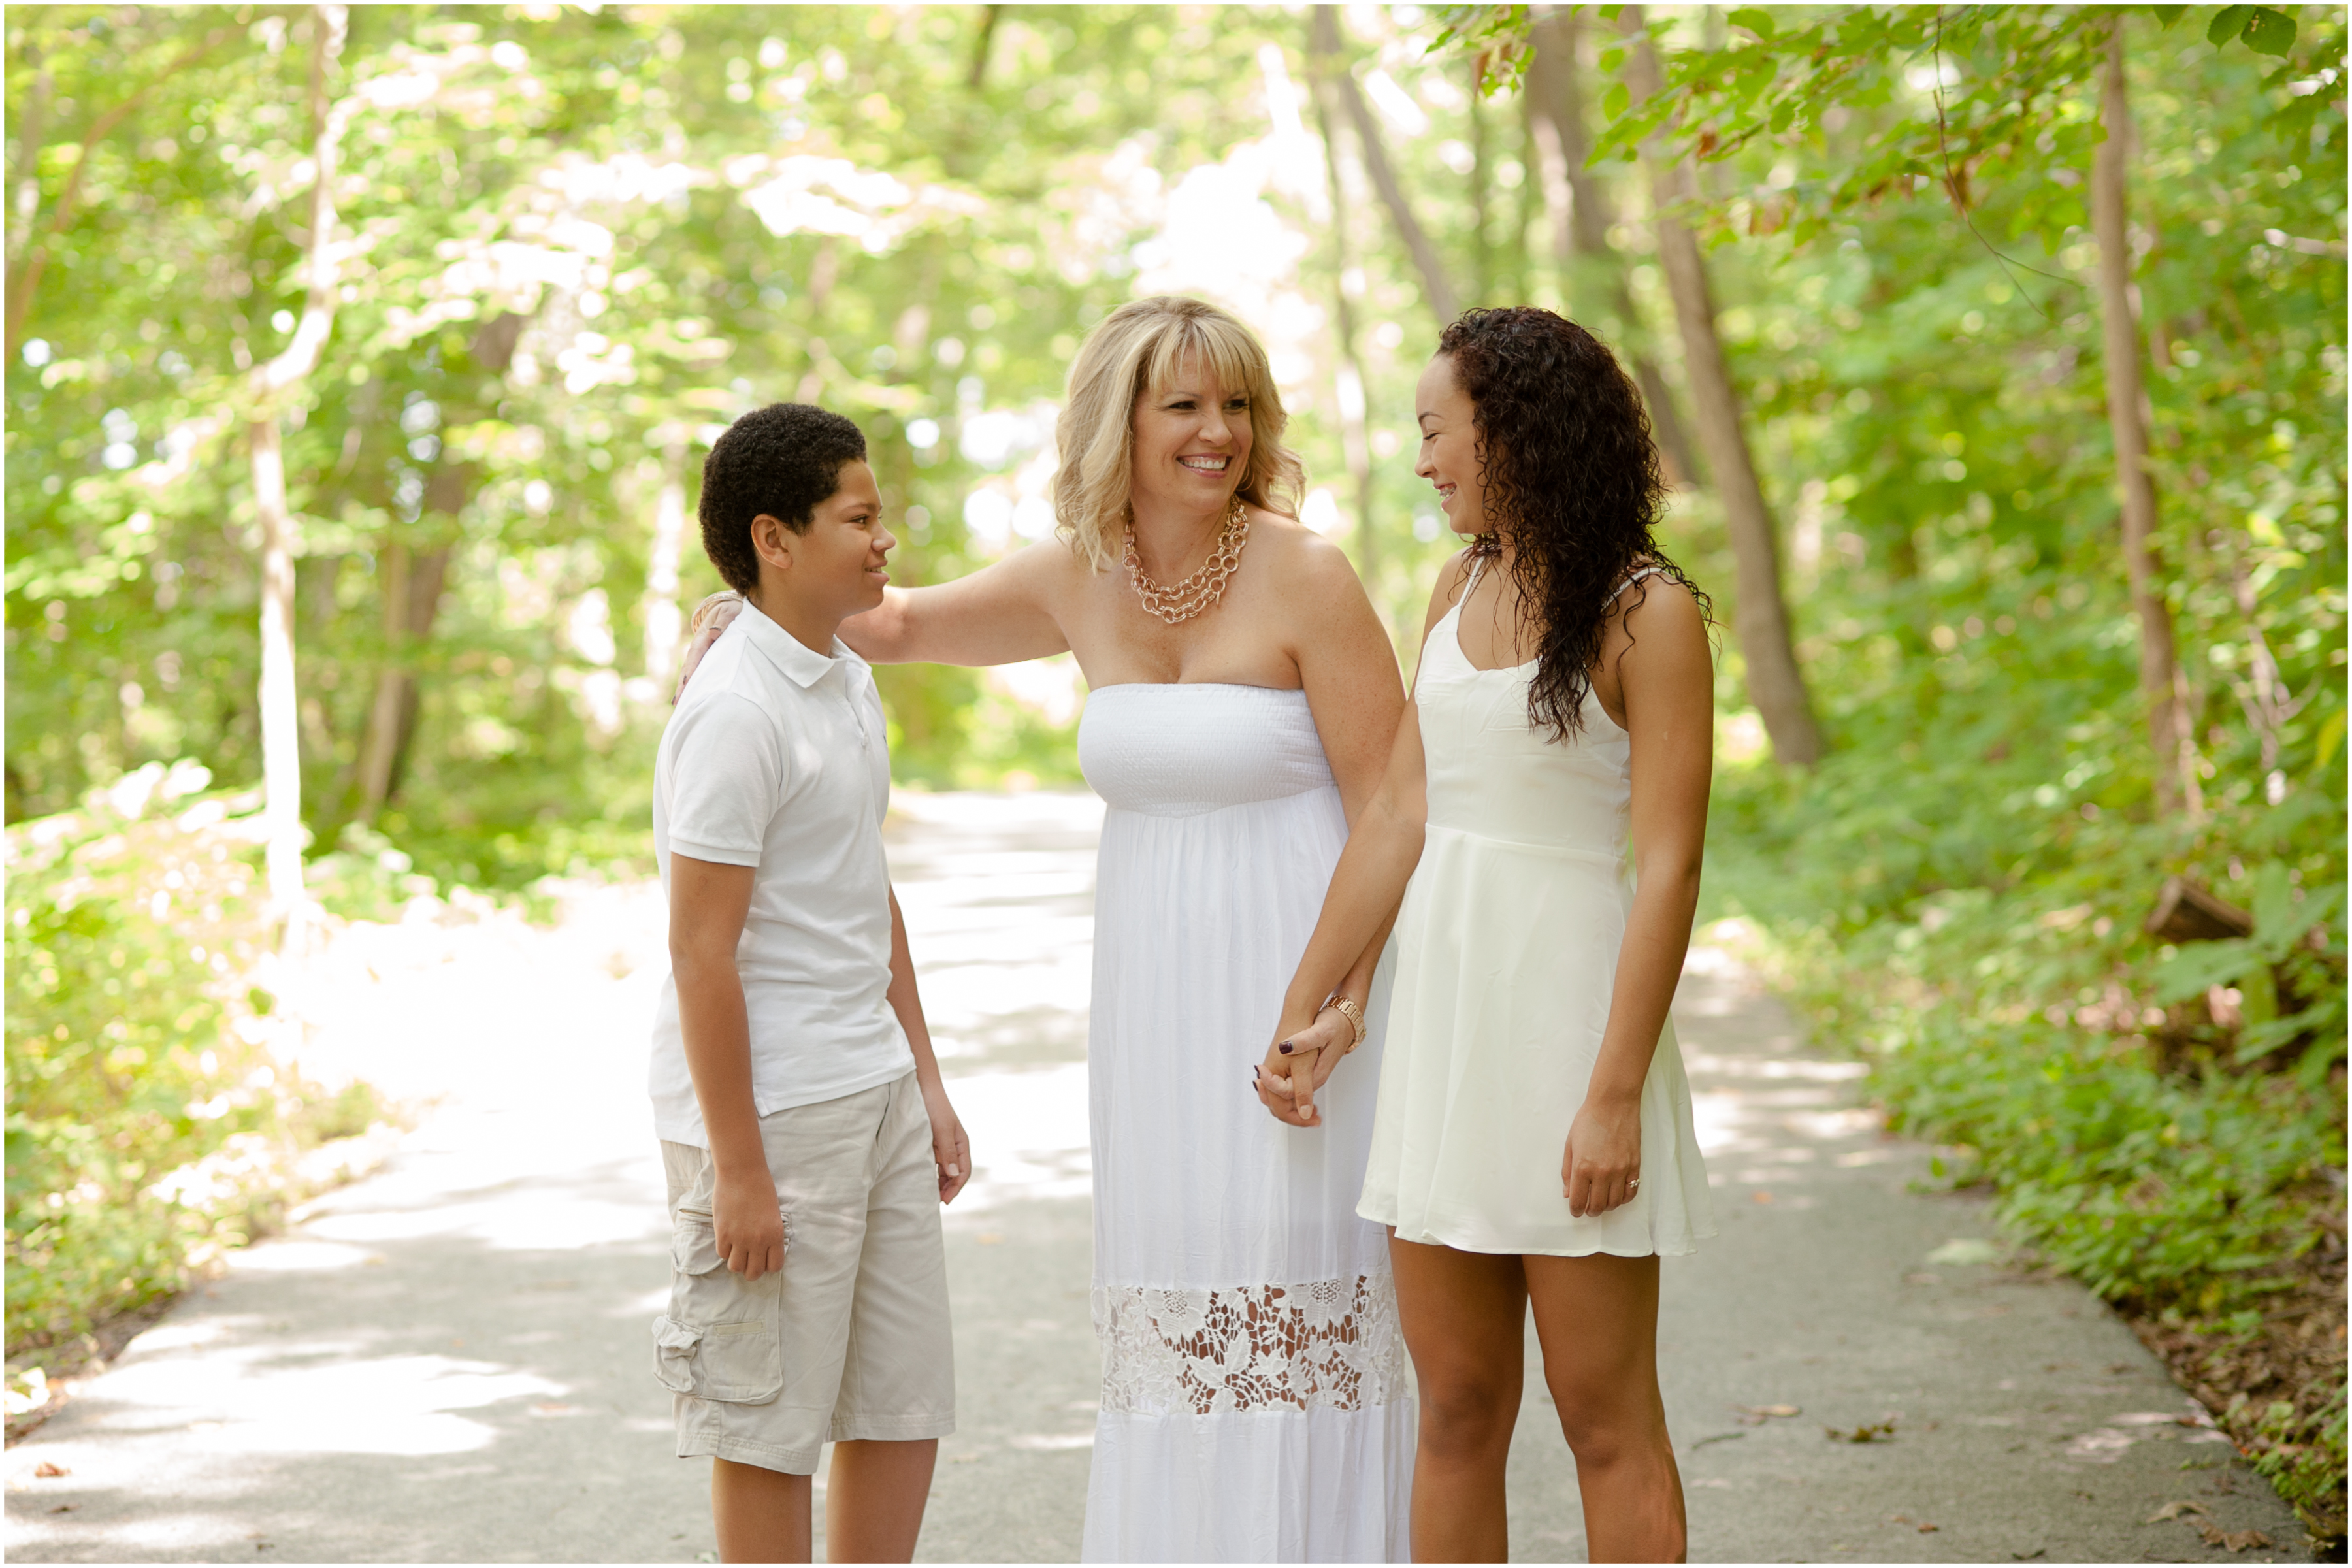 Family Portraits in Chesapeake Beach Maryland taken by Benson Lau Photography 1.jpg